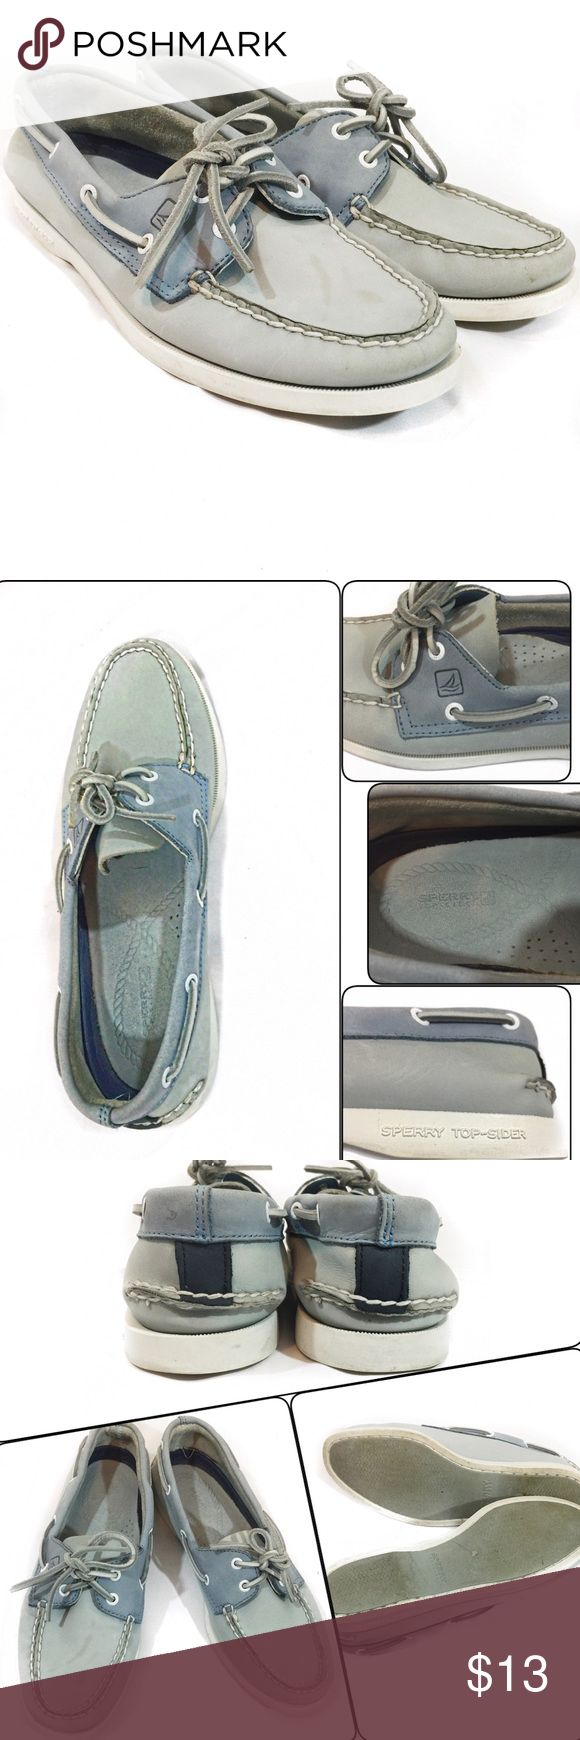 SPERRY TOP-SIDER For sale is a beautiful authentic light-blue Sperry Top-Sider; The only issue and the only reason why I am giving this away at a cheap price is because of the stain (see last picture). I am not an expert in removing stains but I do know some people who are super good in removing any type of stain. Otherwise, this shoe is in excellent condition. Leather upper#9253022. ❗️PRICE IS FIRM❗️ Sperry Top-Sider Shoes Flats & Loafers